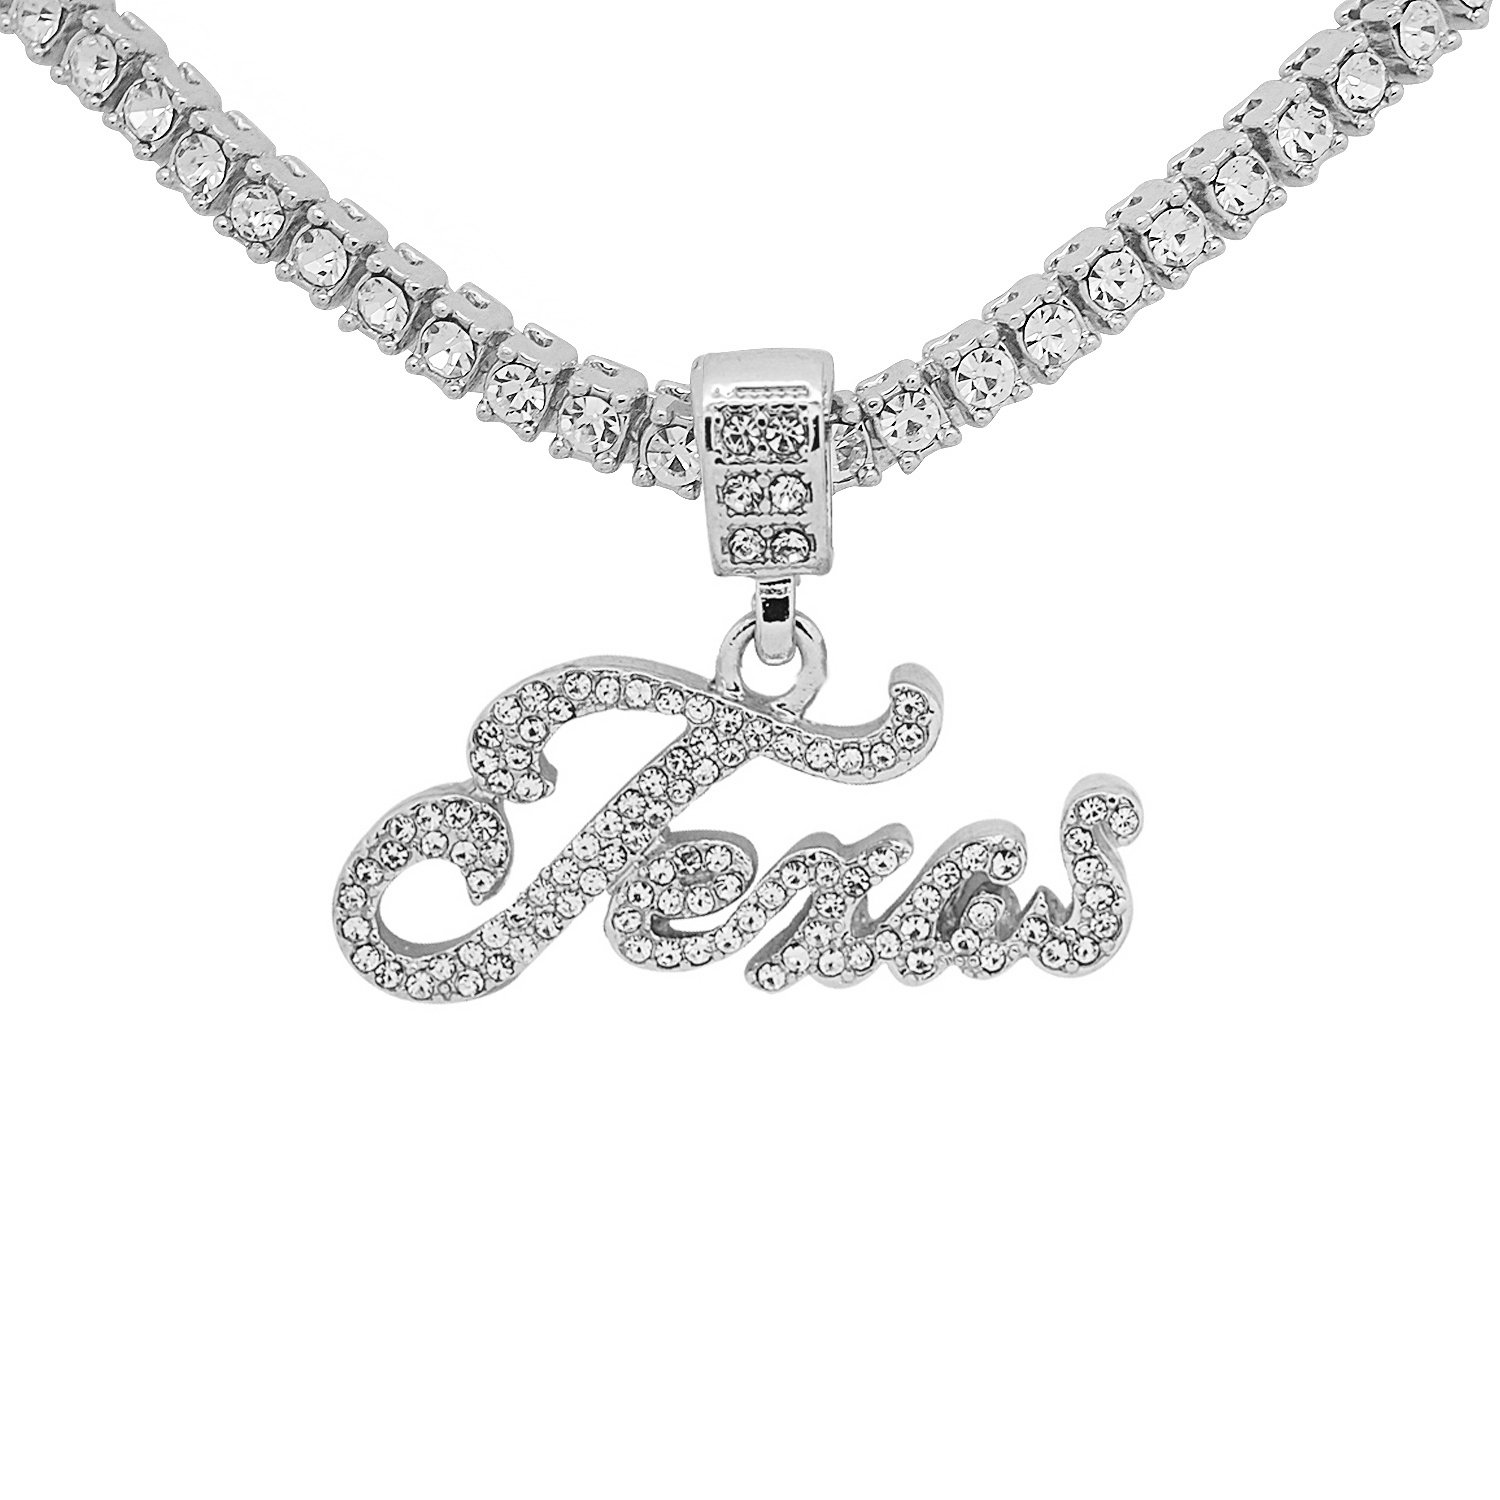 White Gold-Tone Hip Hop Bling CursiveTexas Letter Pendant with 16 Tennis Chain and 24 Rope Chain